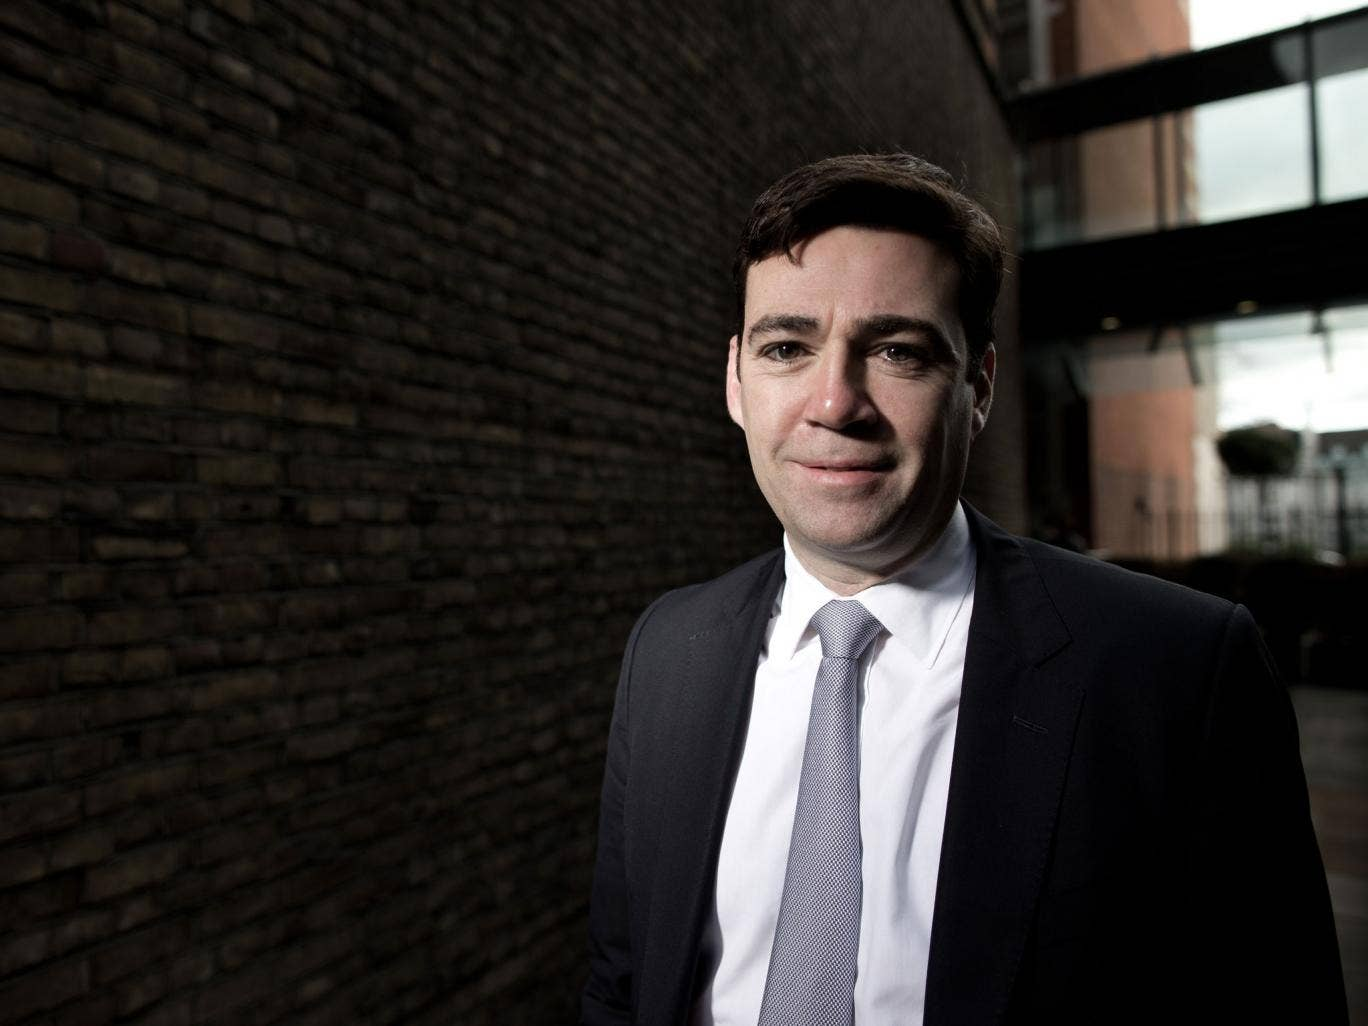 Andy Burnham MP, Shadow Secretary of State for Health. Photographed at Portcullis House